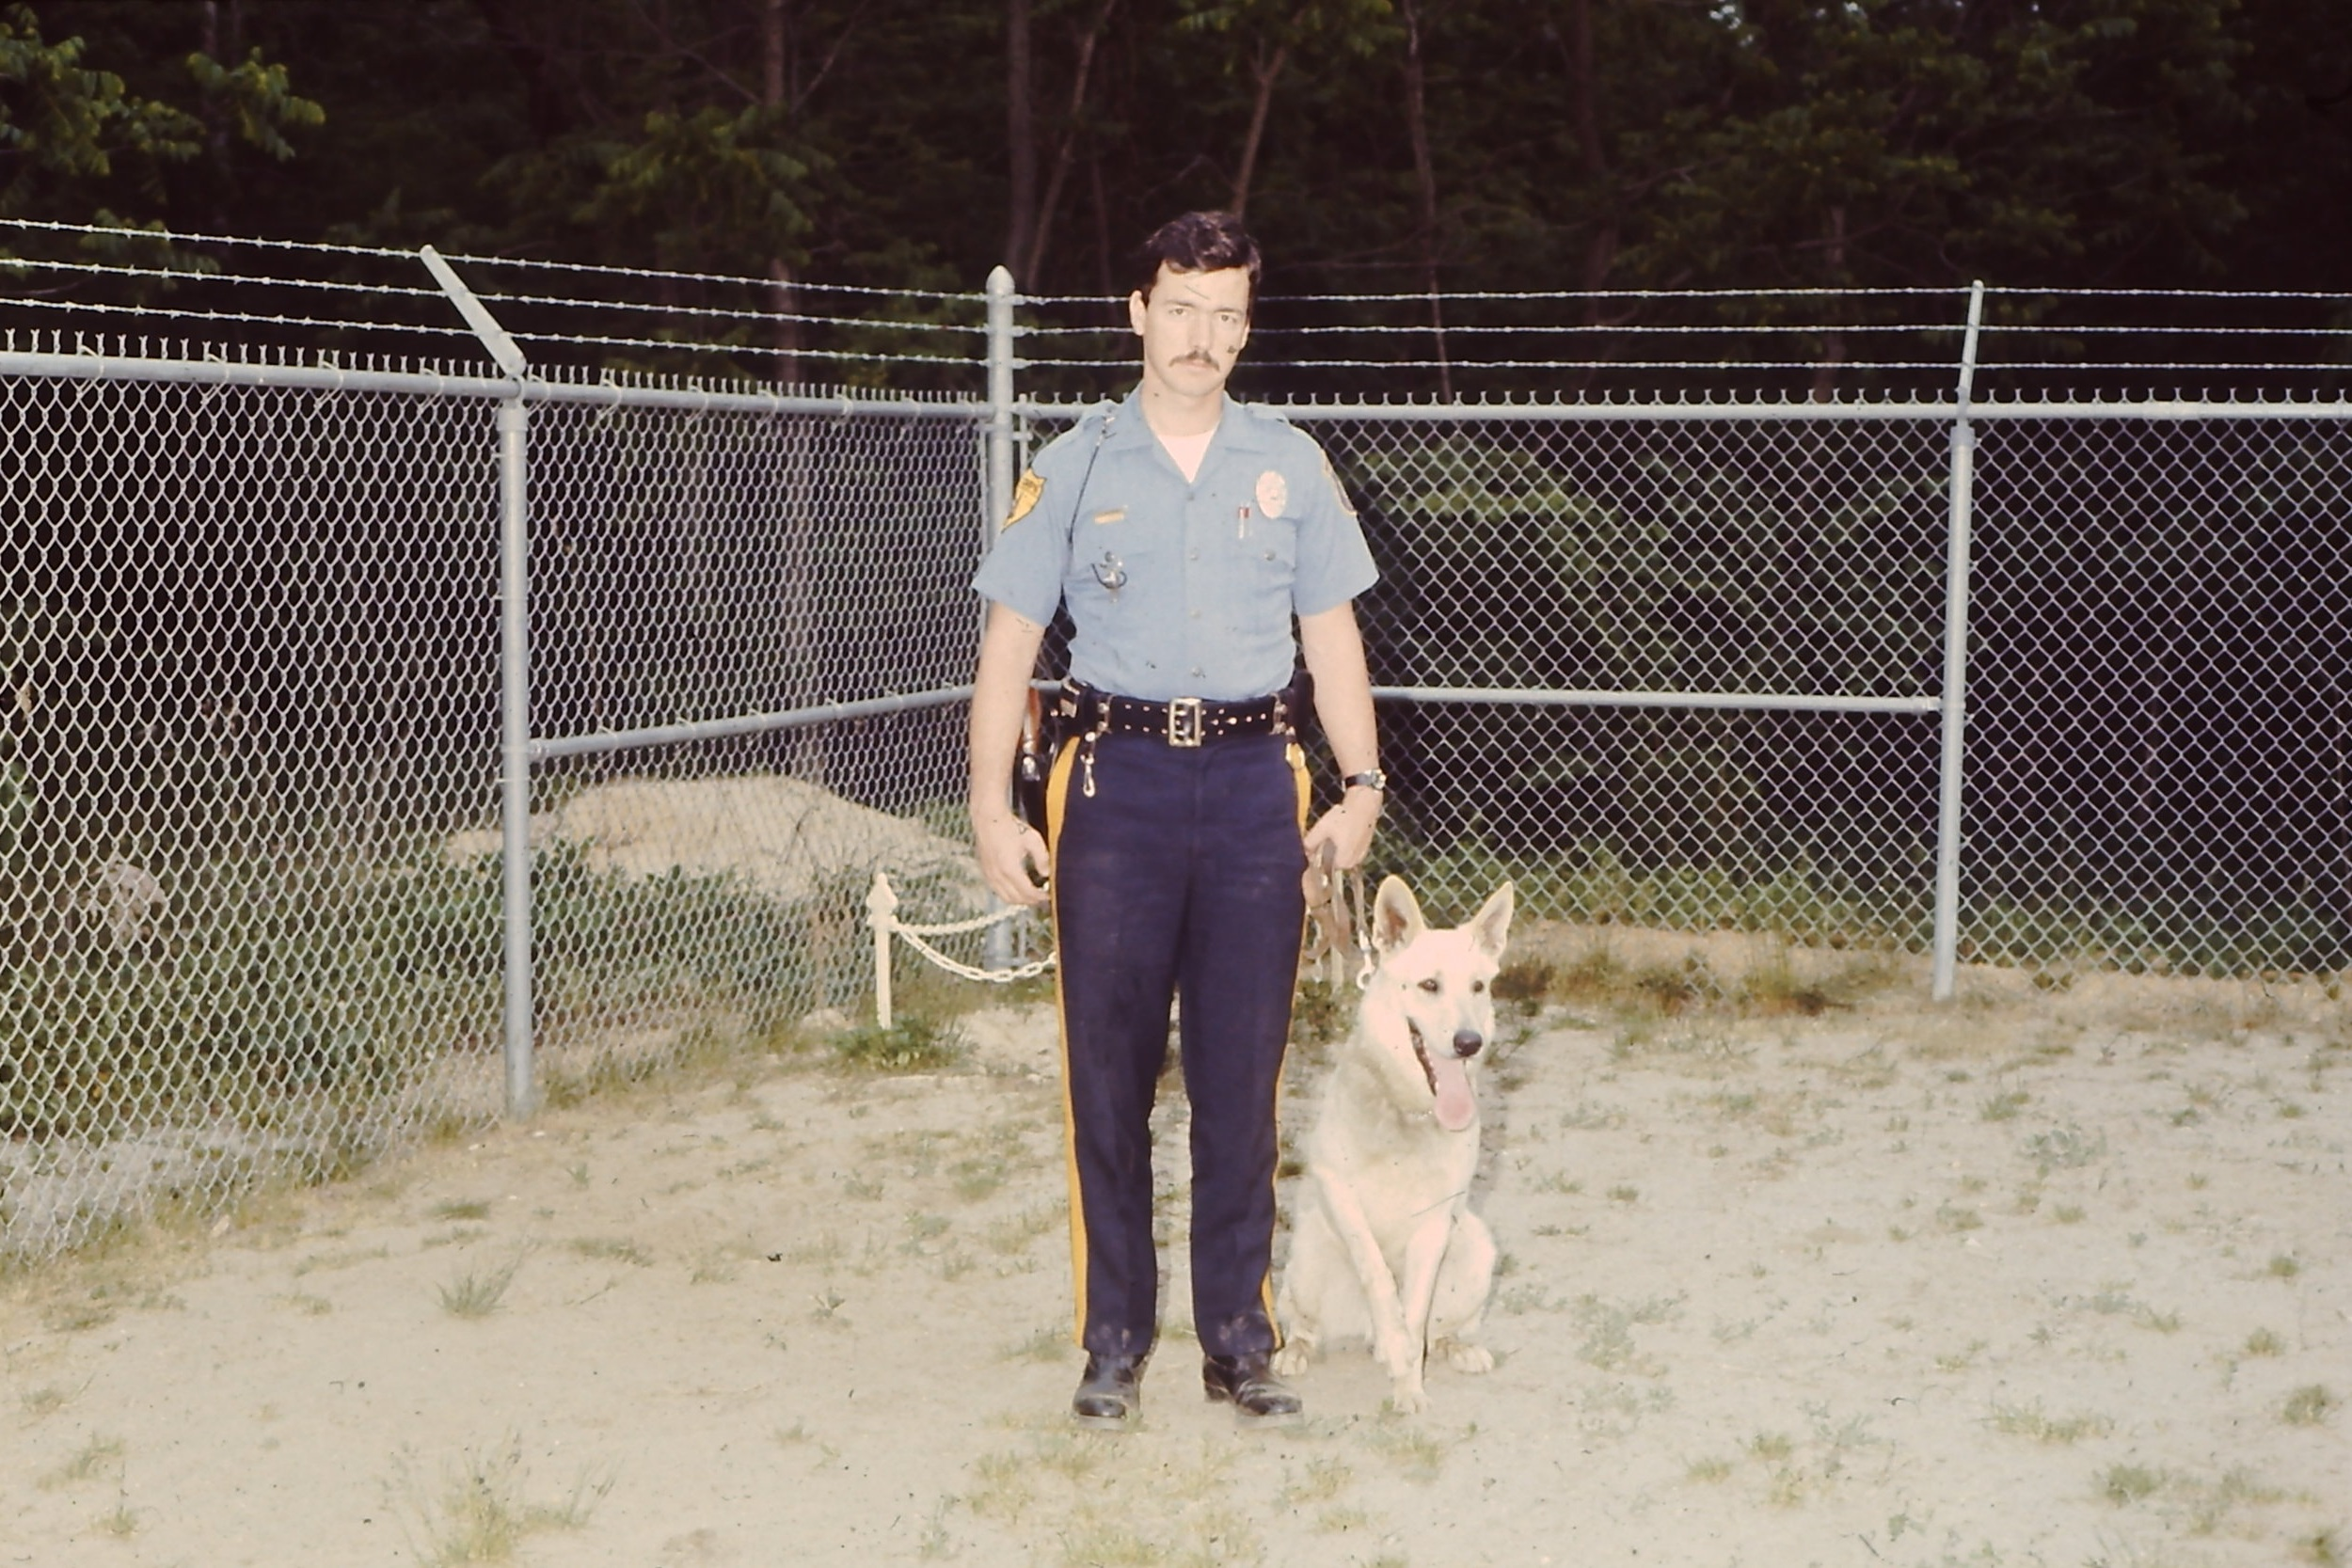 PO Richard Woodhull / K-9 Satan